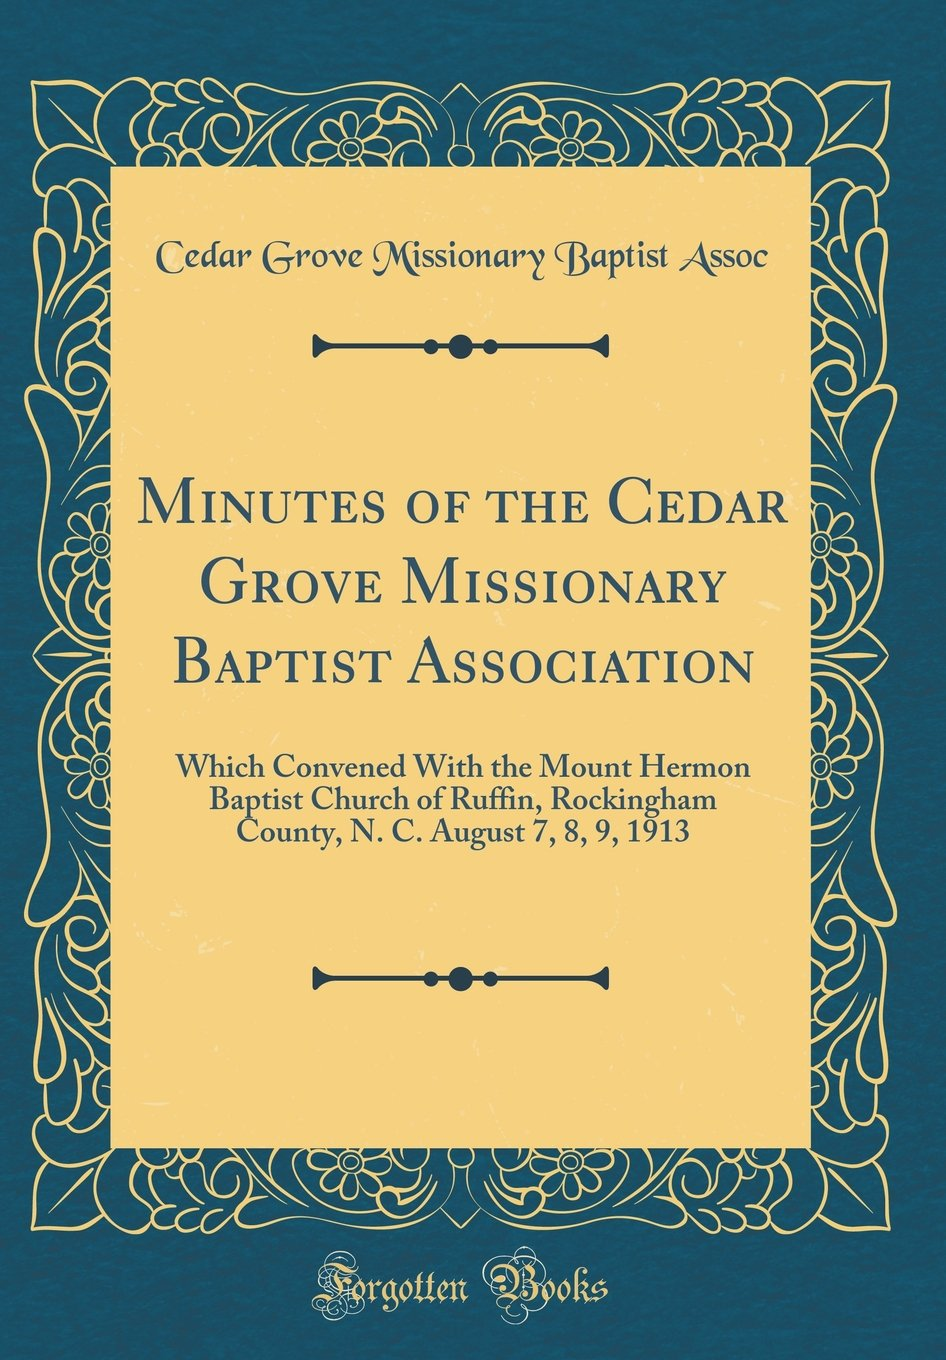 Download Minutes of the Cedar Grove Missionary Baptist Association: Which Convened with the Mount Hermon Baptist Church of Ruffin, Rockingham County, N. C. August 7, 8, 9, 1913 (Classic Reprint) pdf epub